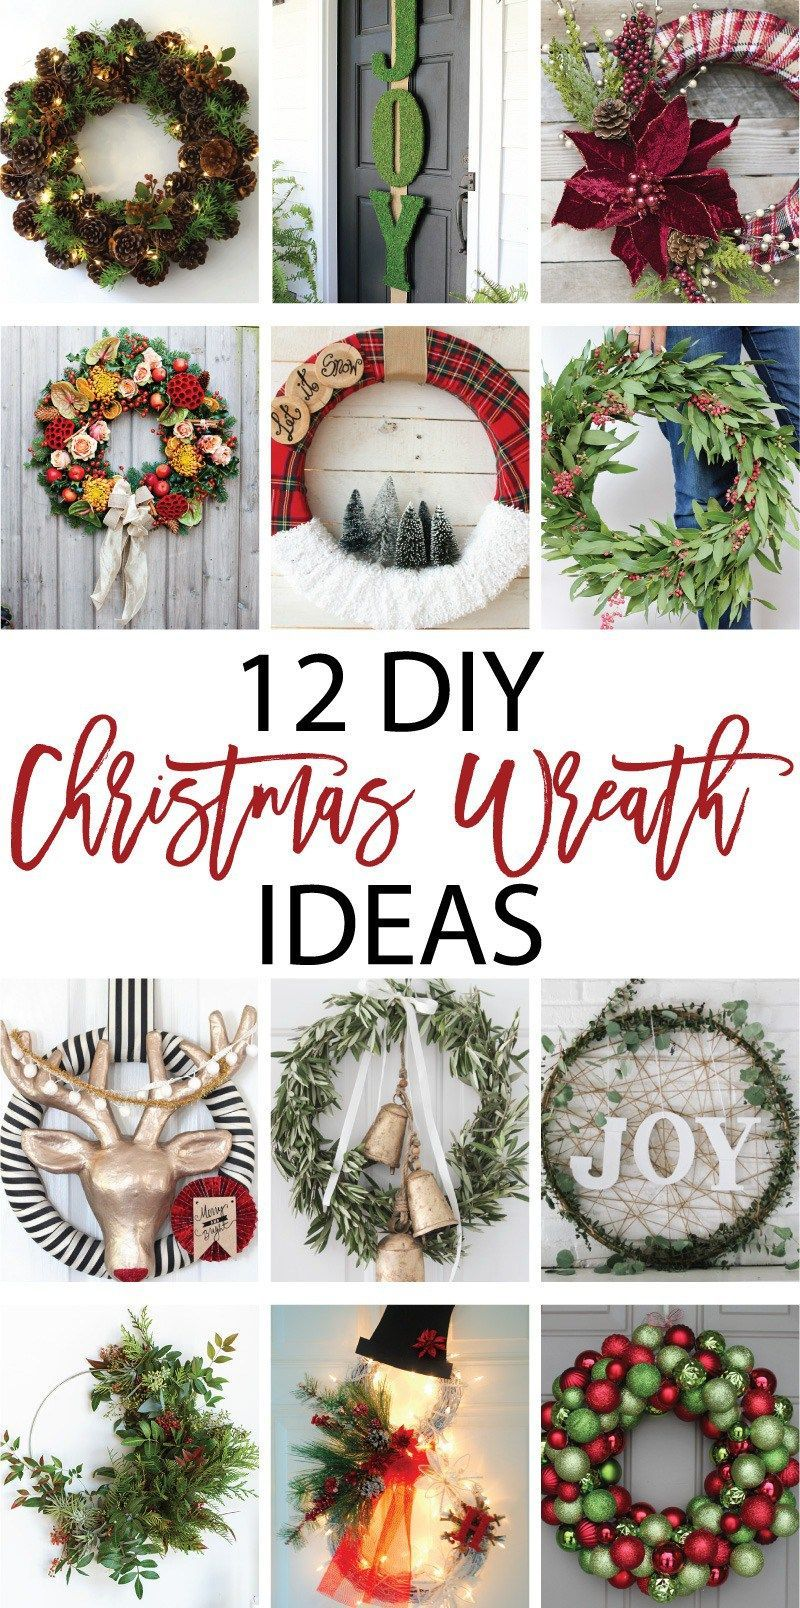 12 DIY Christmas Wreath Ideas on Love the Day | Imagenes navideñas ...